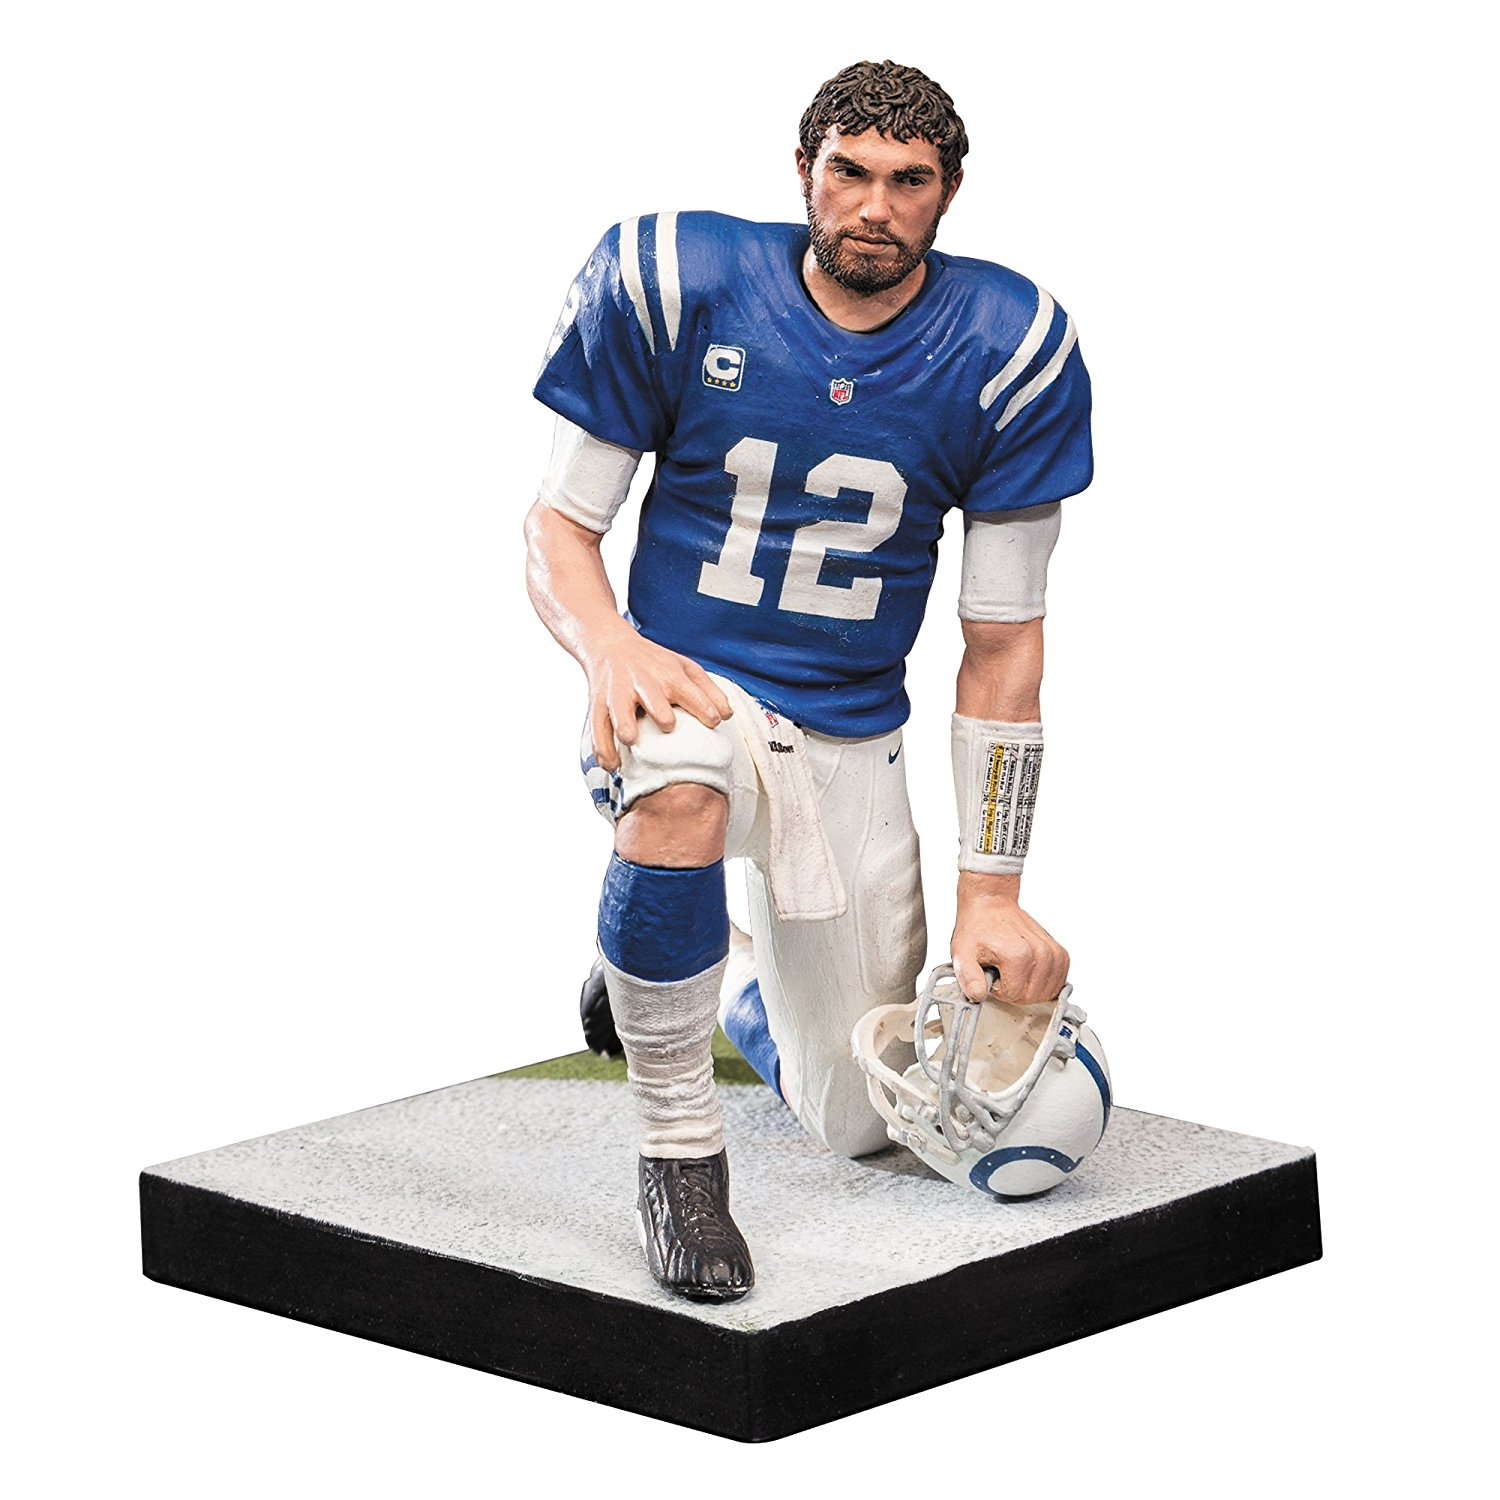 Toys NFL Series 36 Andrew Luck Indianapolis Colts Action Figure By McFarlane Ship from US